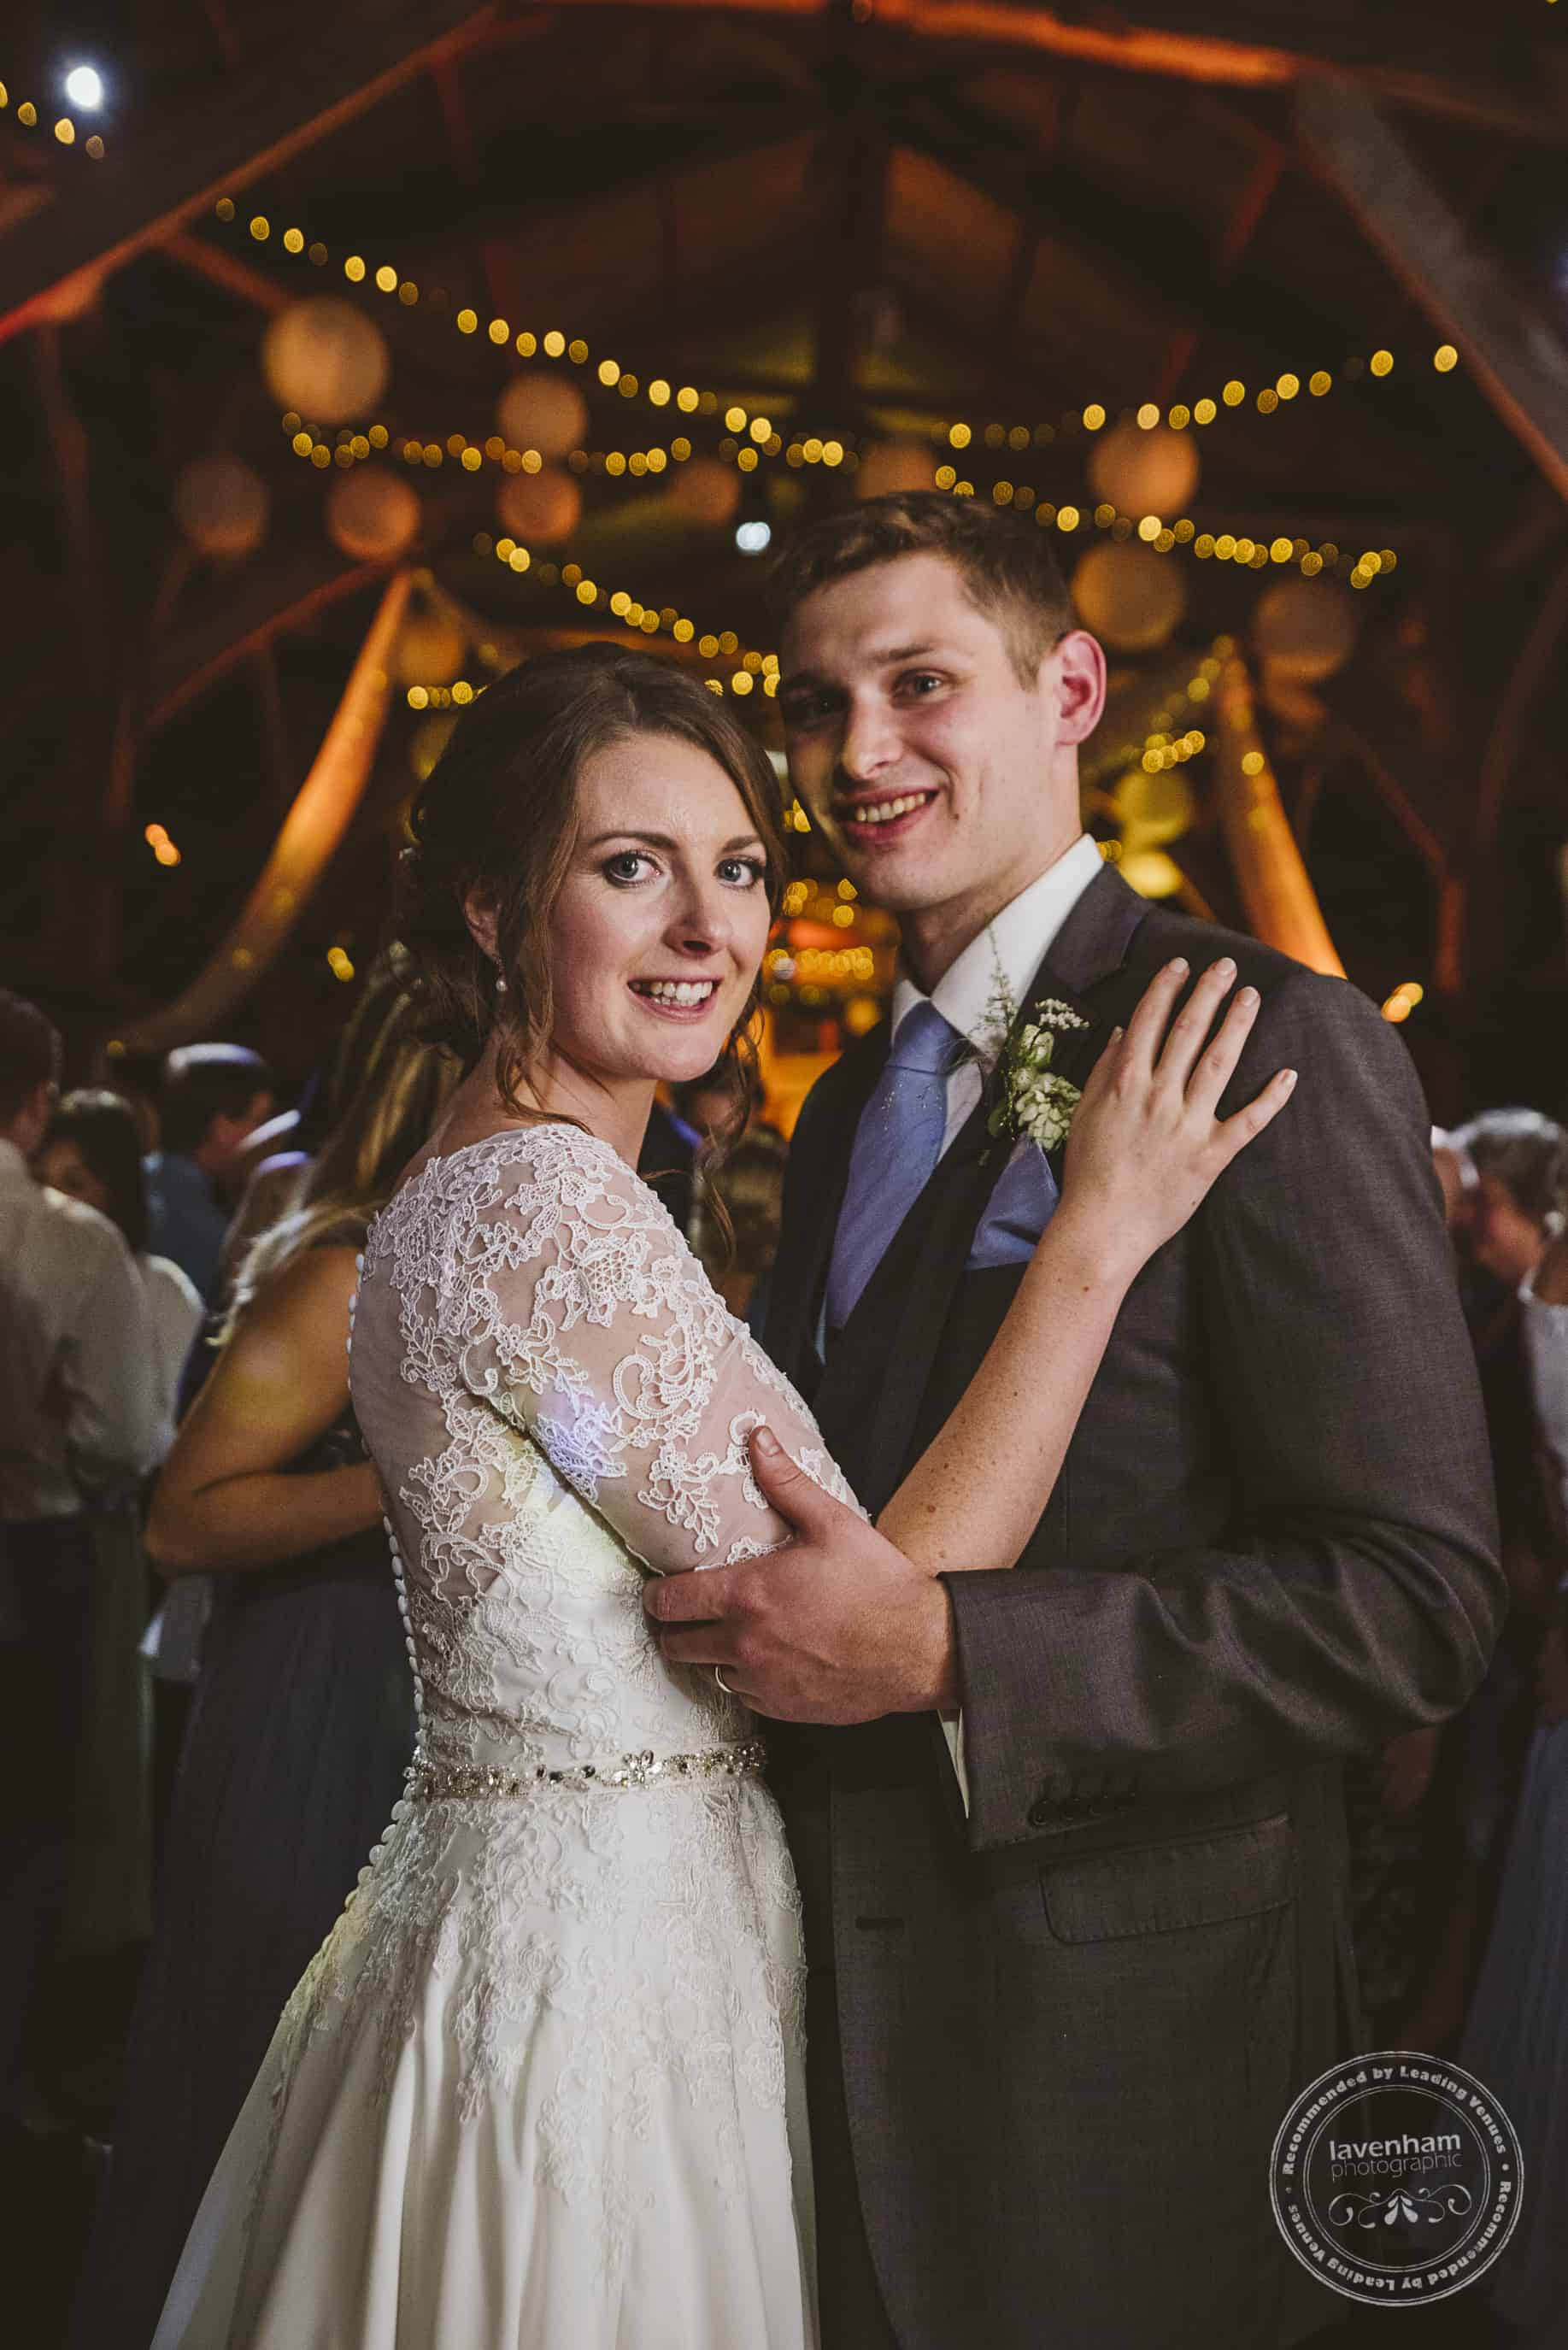 220918 Alpheton Barn Wedding Photography by Lavenham Photographic 144